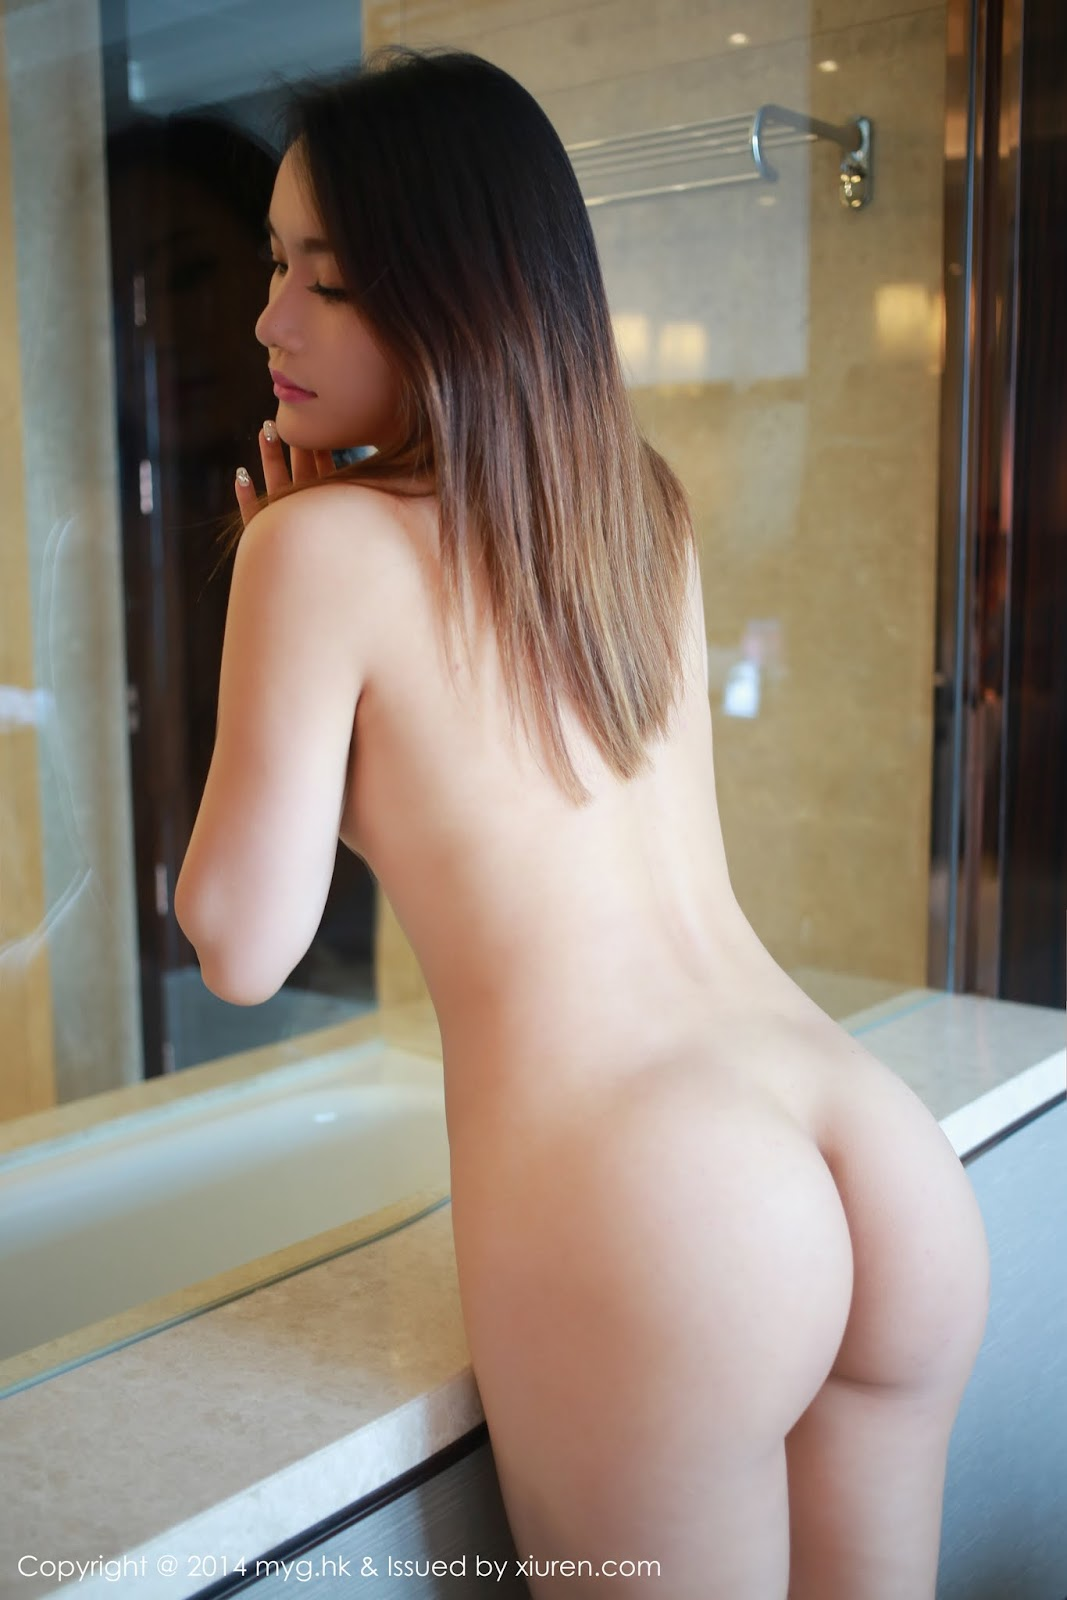 0035 - Beautiful Naked Girl Model MYGIRL VOL.35